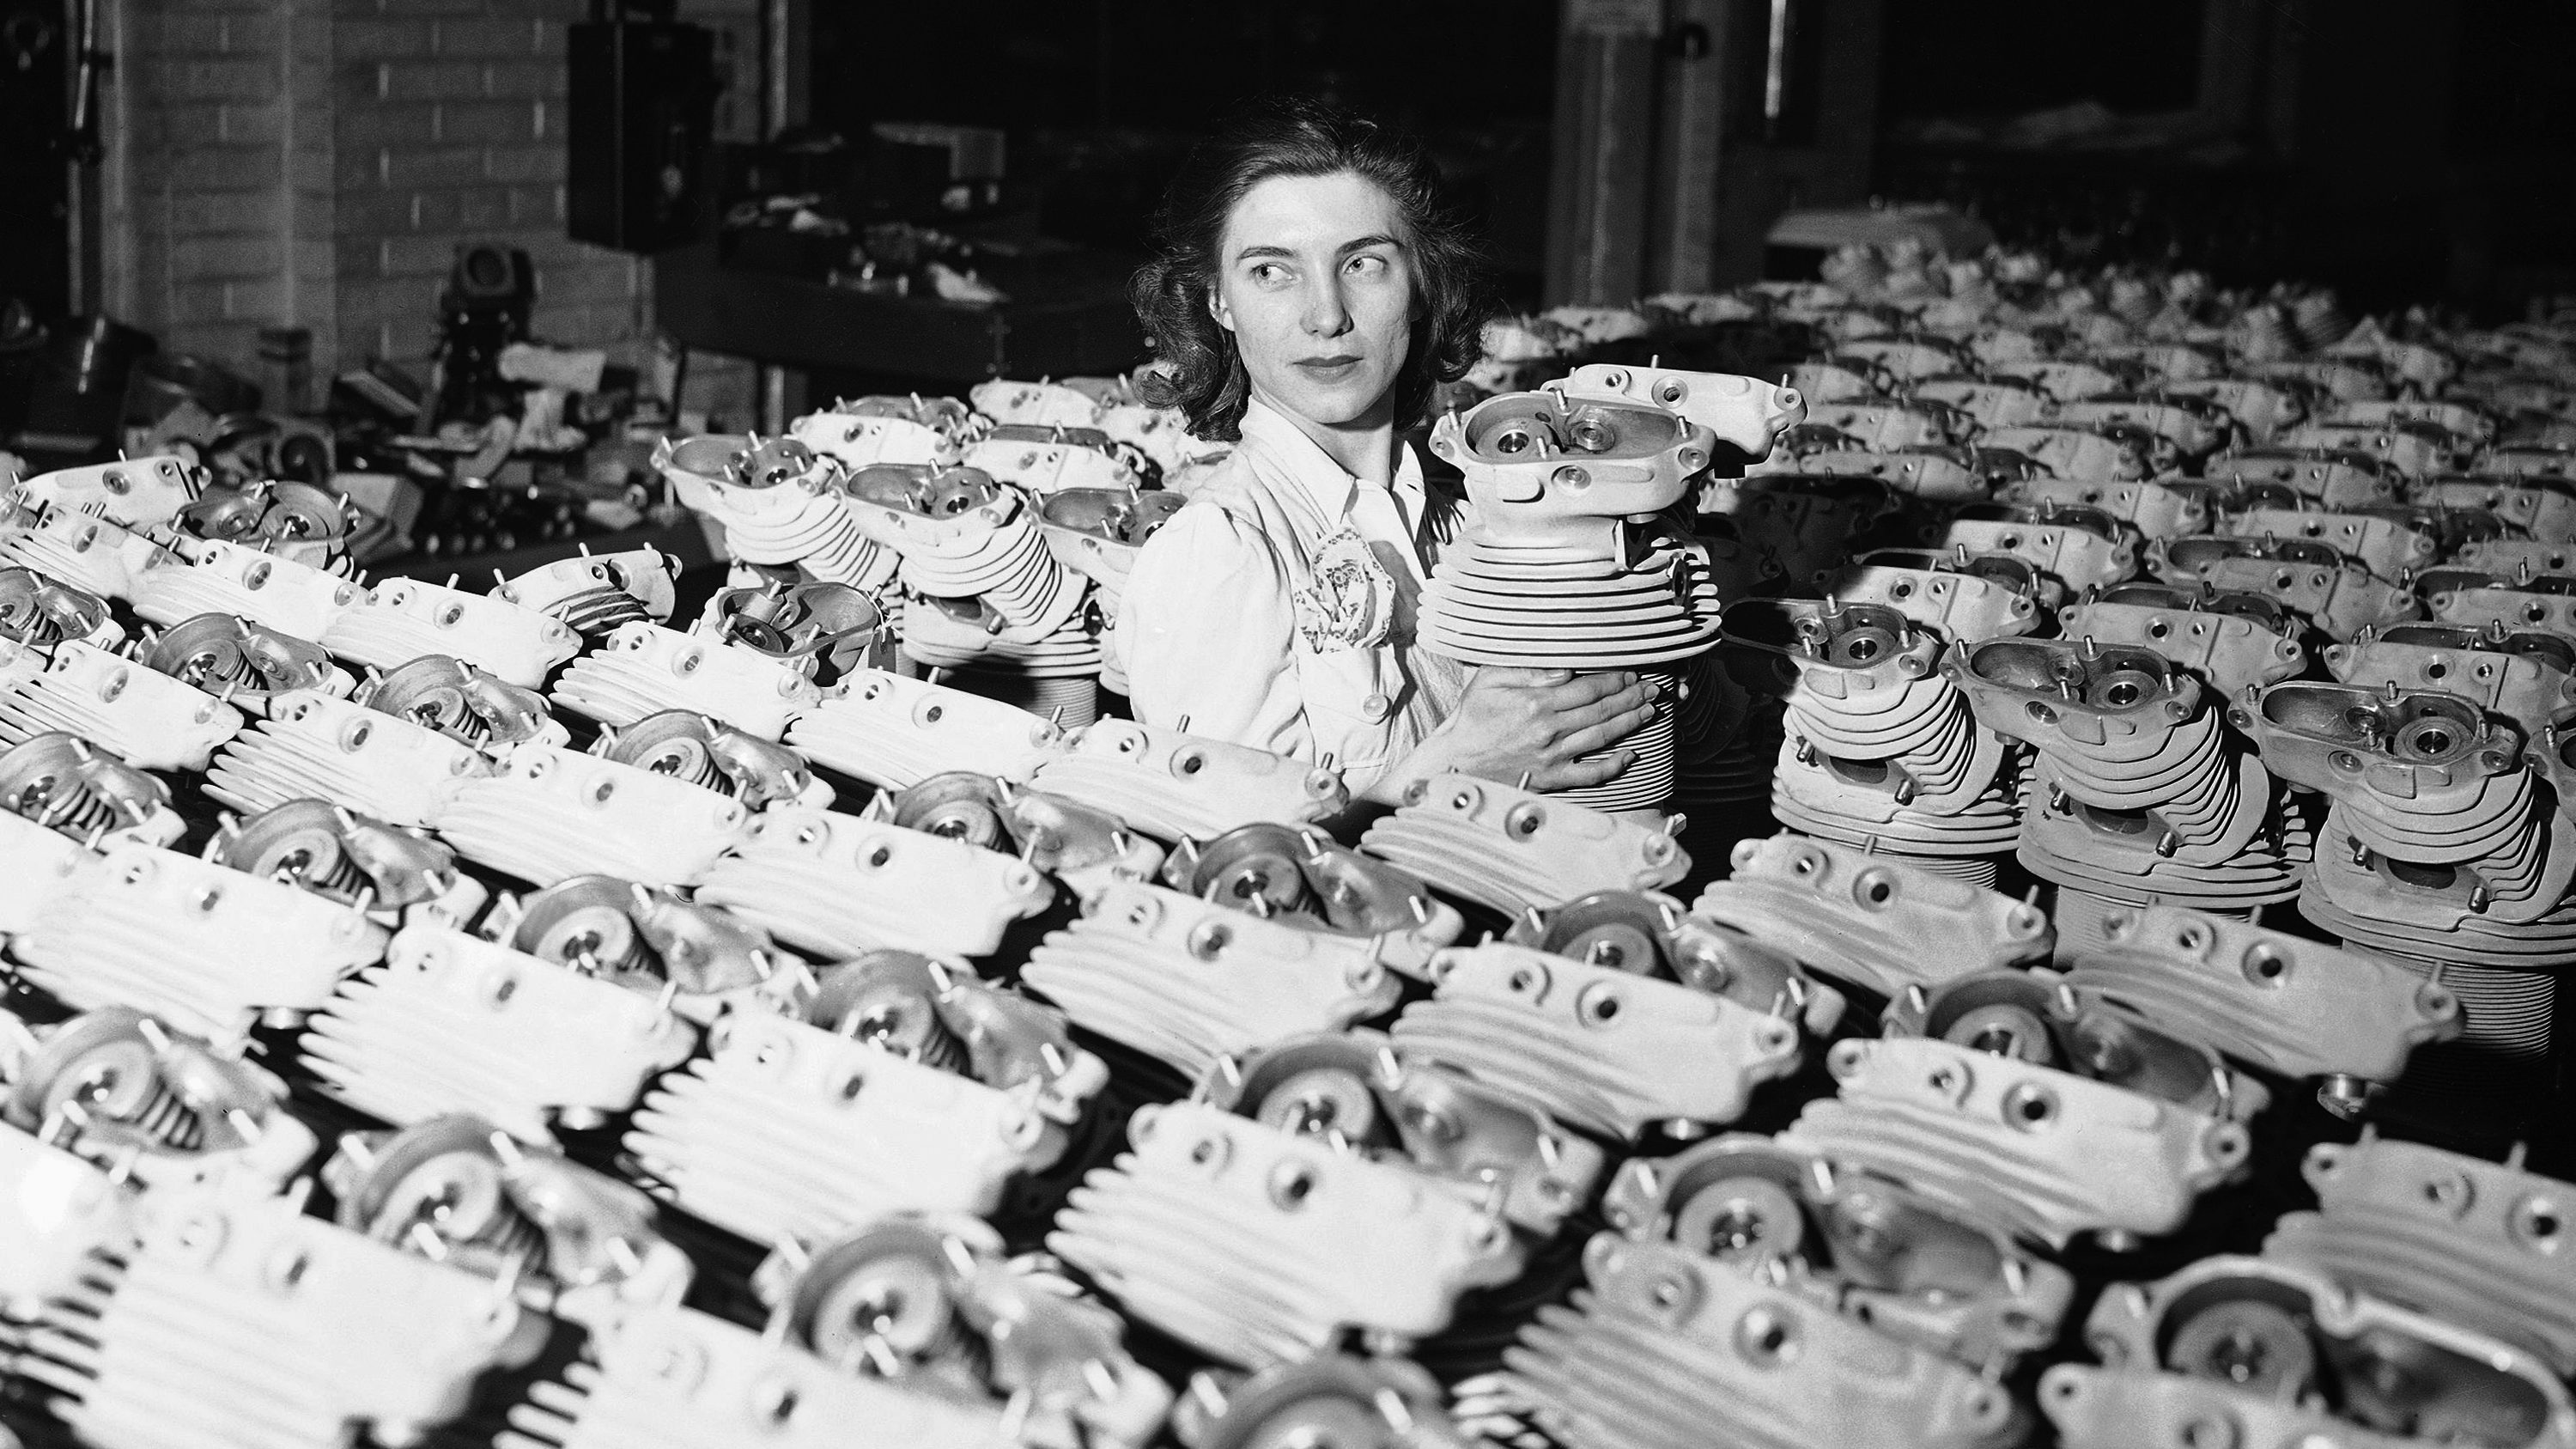 Ida Ungerer, 24, is shown with airplane engine cylinders at Naval aircraft factory in Philadelphia navy yard, March 3, 1942.